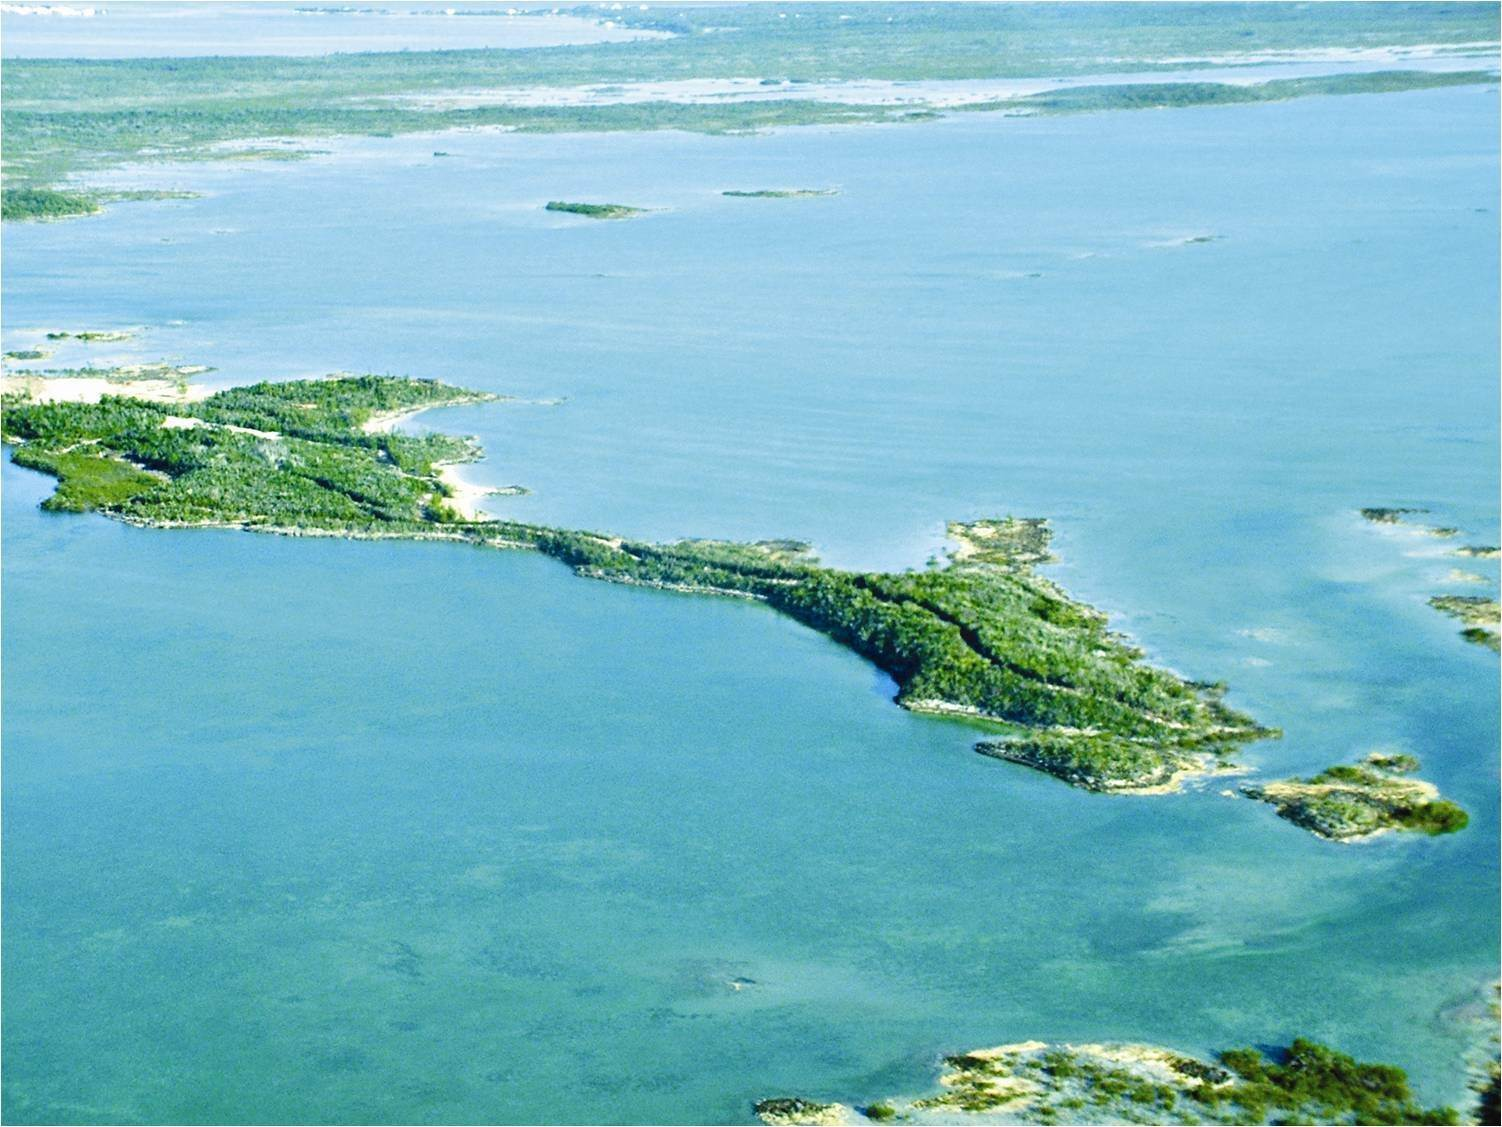 Private Islands for Sale at Private Ownership or Development Eleuthera, Bahamas